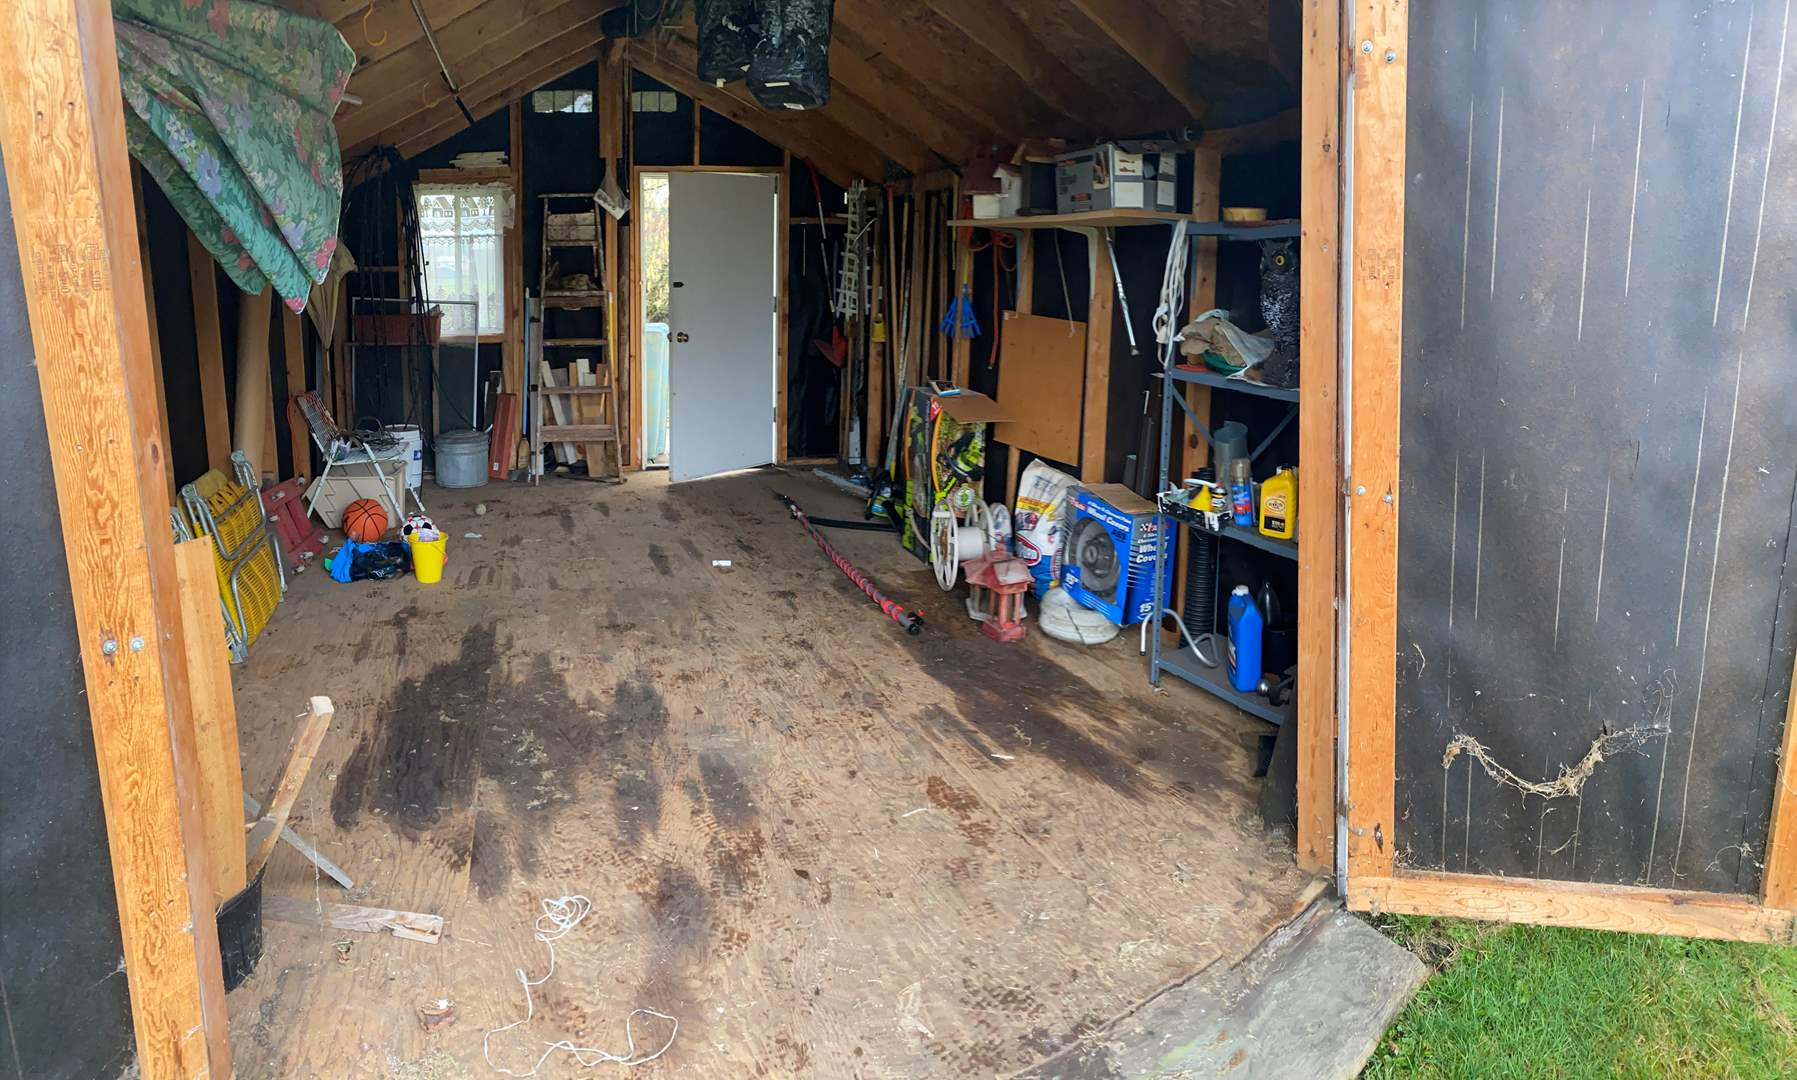 Lot # 276 - Shed Full of Yard Tools, Yard Games, Chairs, Chain Saw, Craftsman Hedge Clippers & More..  (main image)